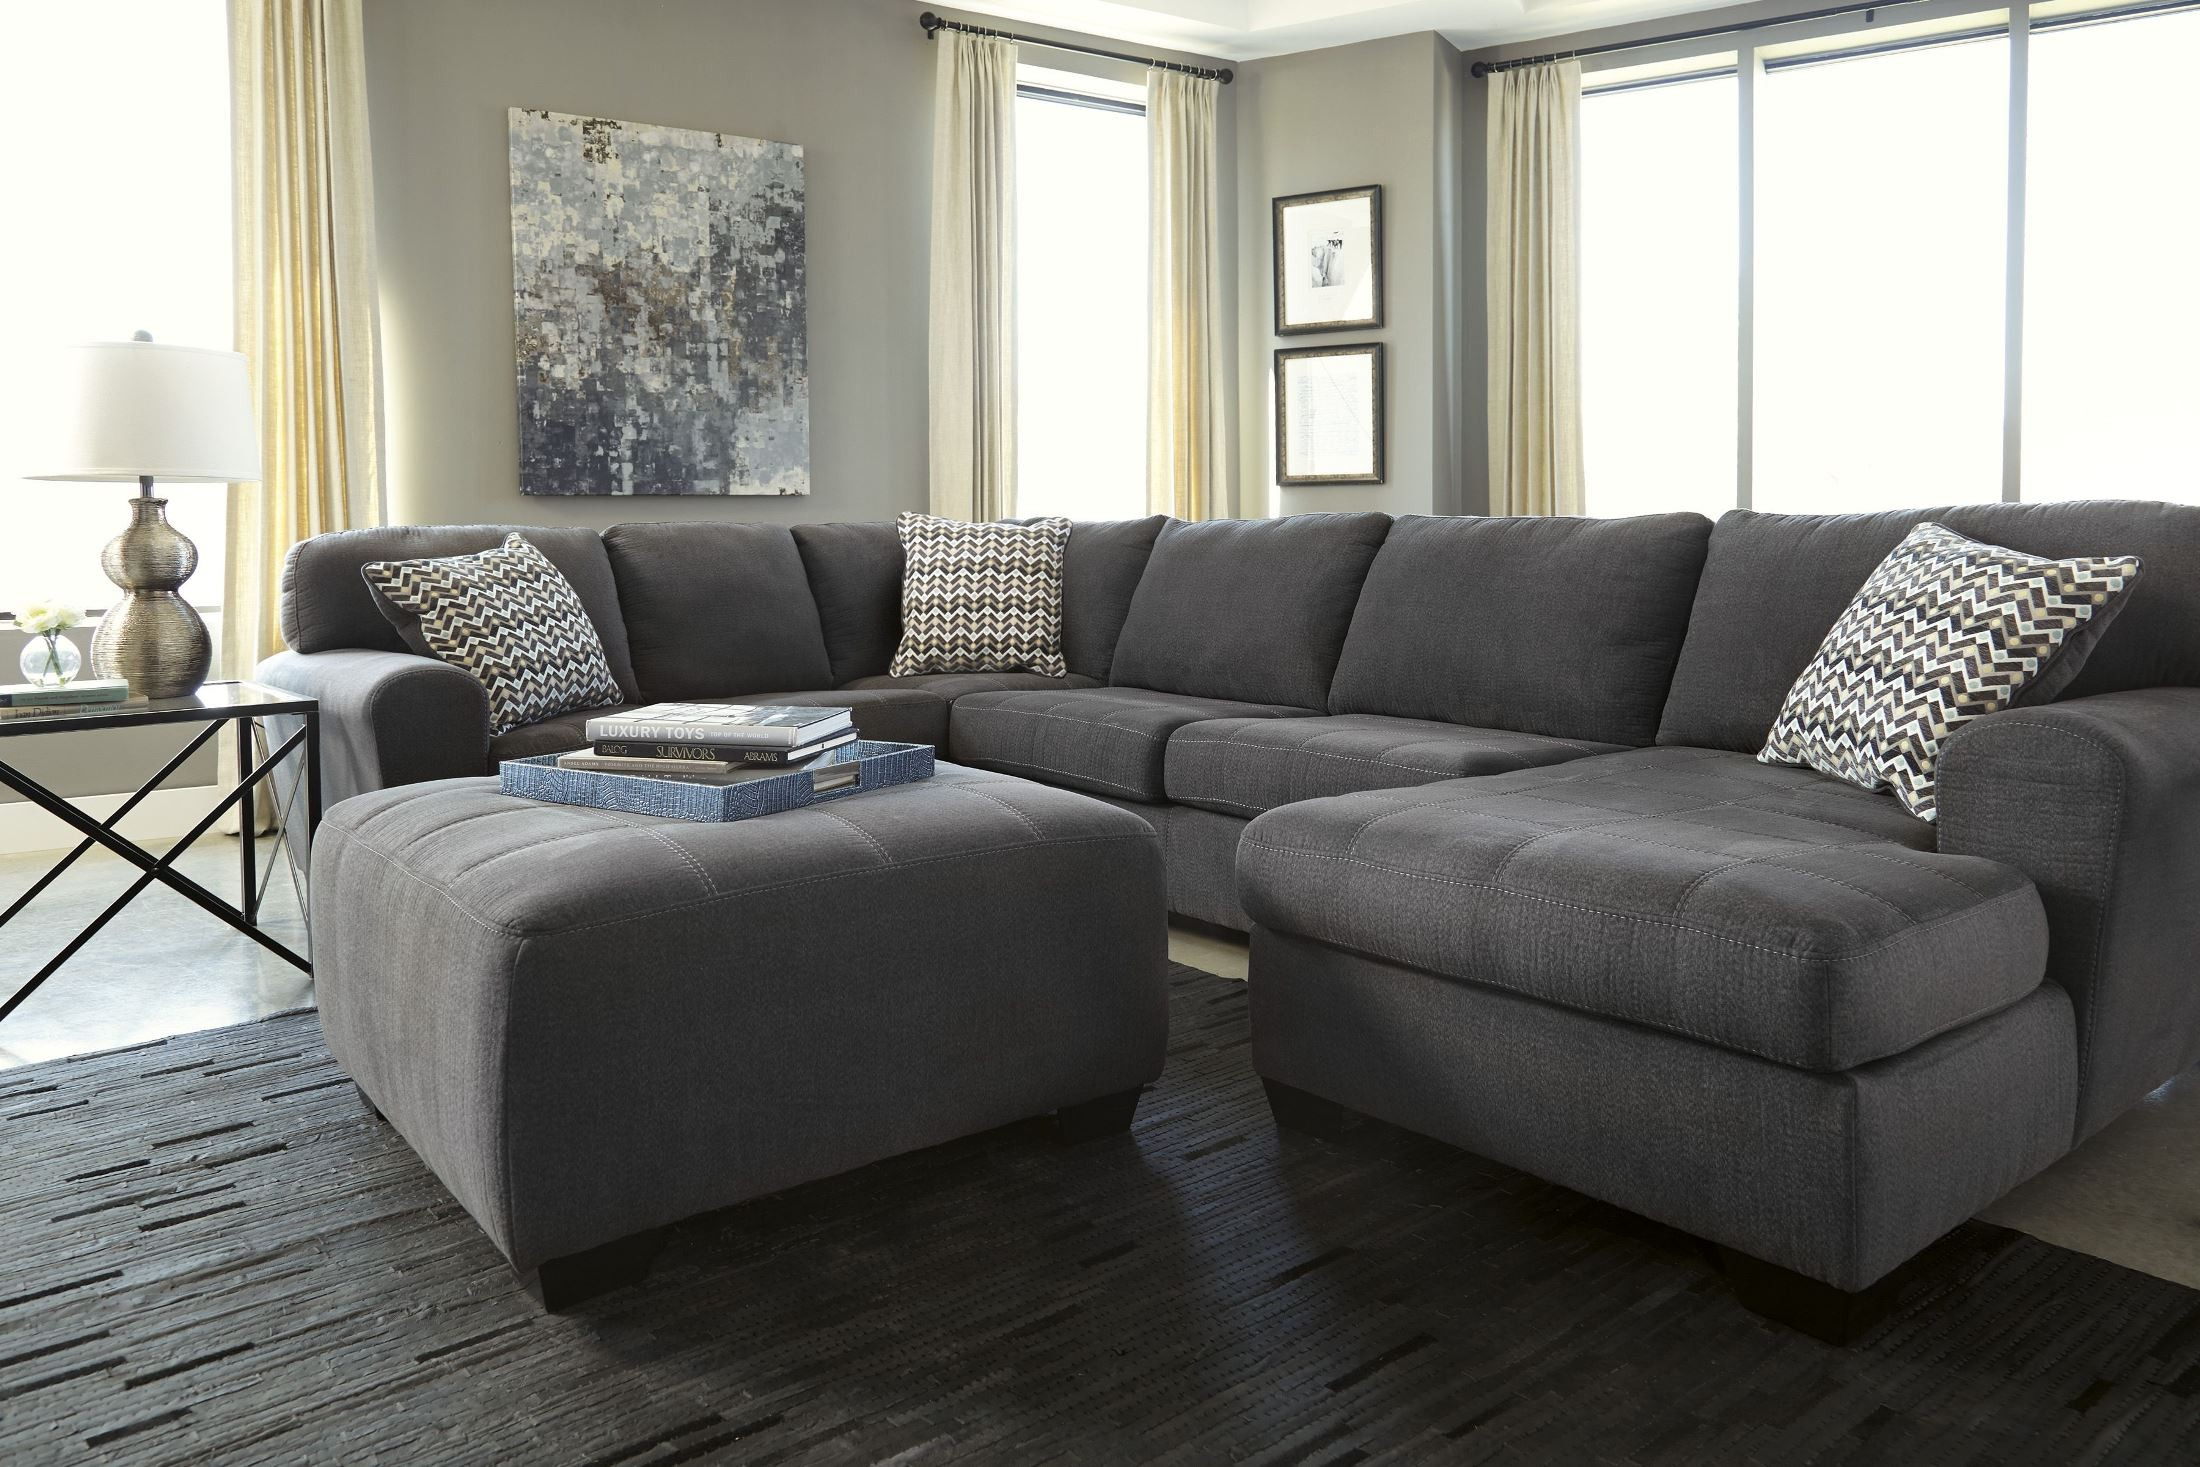 Chaise C Discount Sorenton Slate Raf Sectional From Ashley (2860017